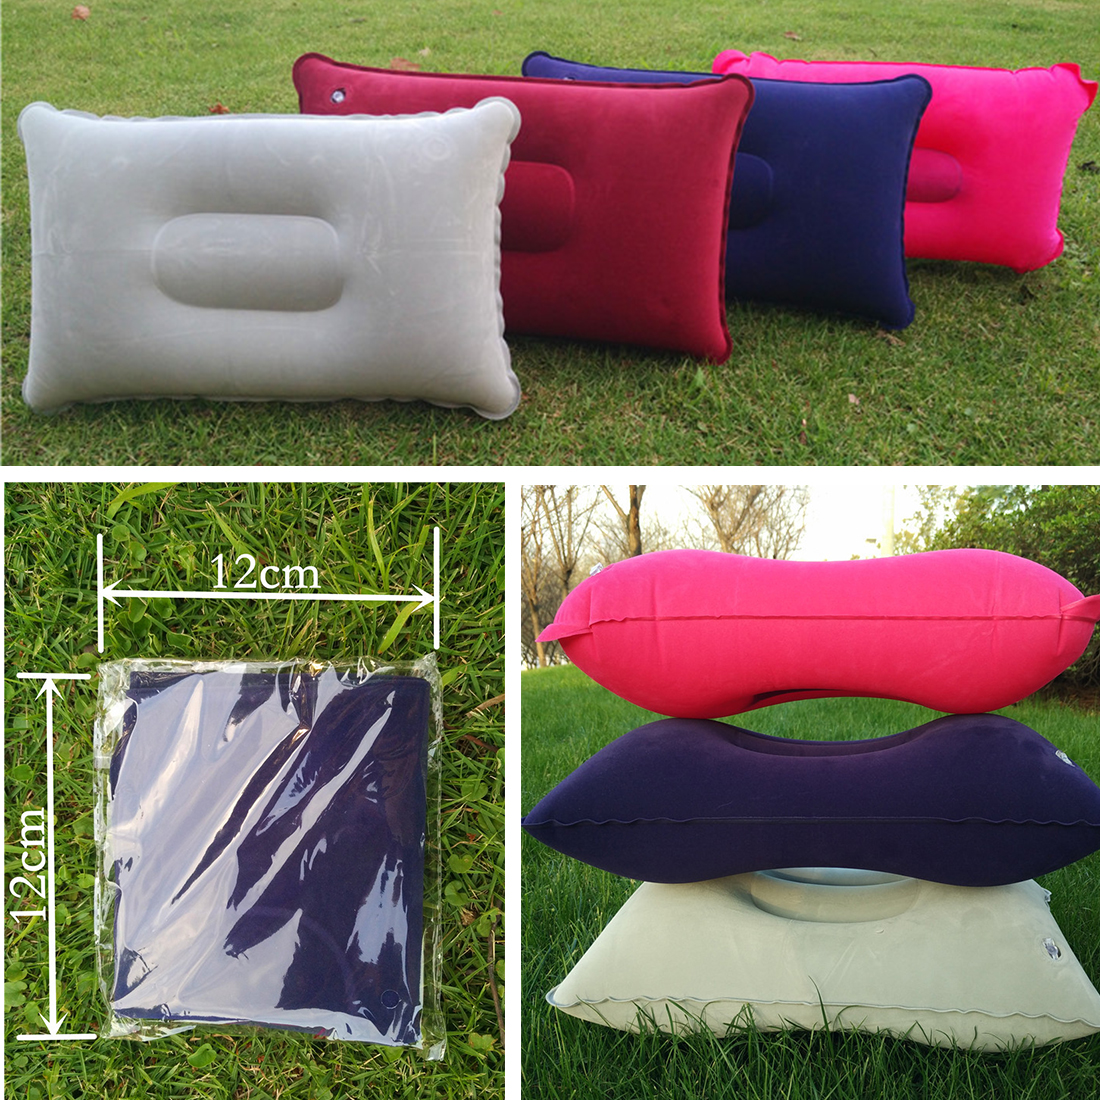 Flocked Inflatable Air Seat Cushion Pad for Outdoor Camping Sports Wheel Chair